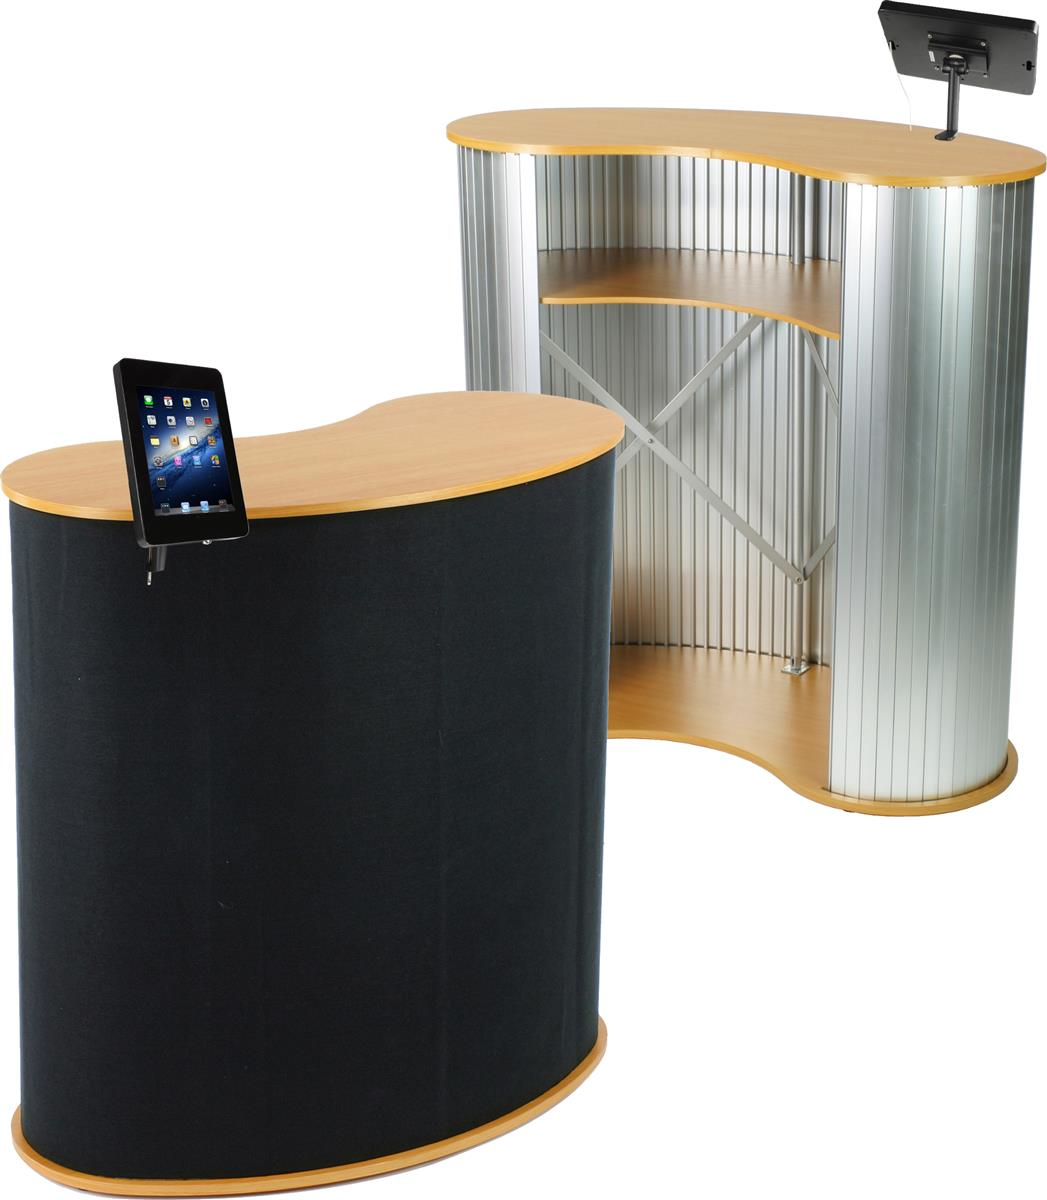 Portable Trade Show Flooring : Portable trade show counter with ipad display exhibit booth